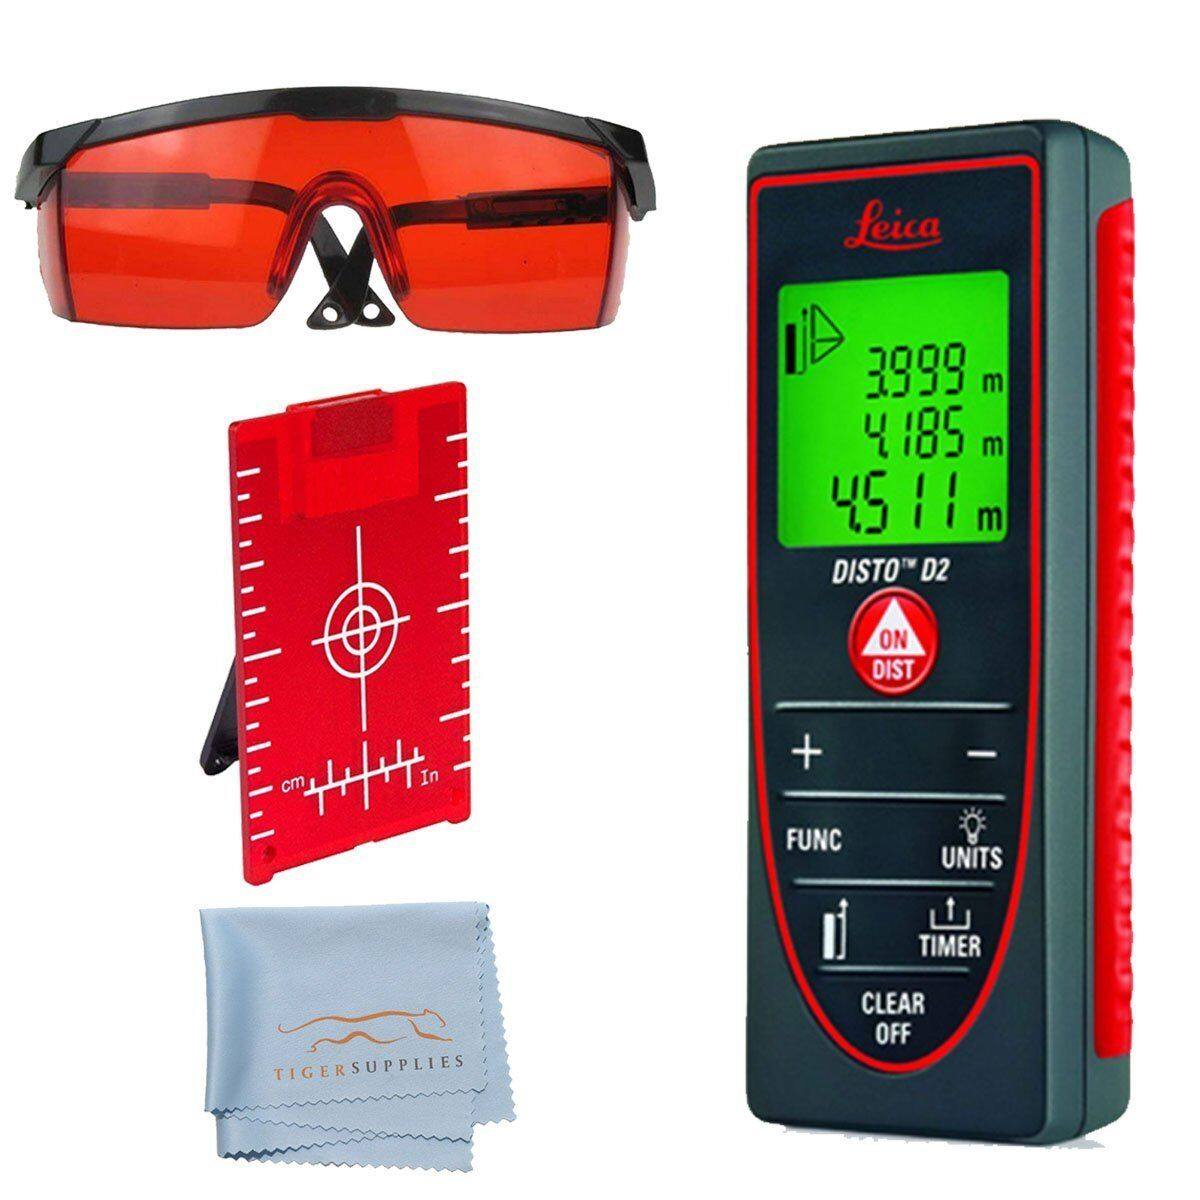 leica disto d2 laser distance meter 763495 w accessory kit target plate ebay. Black Bedroom Furniture Sets. Home Design Ideas